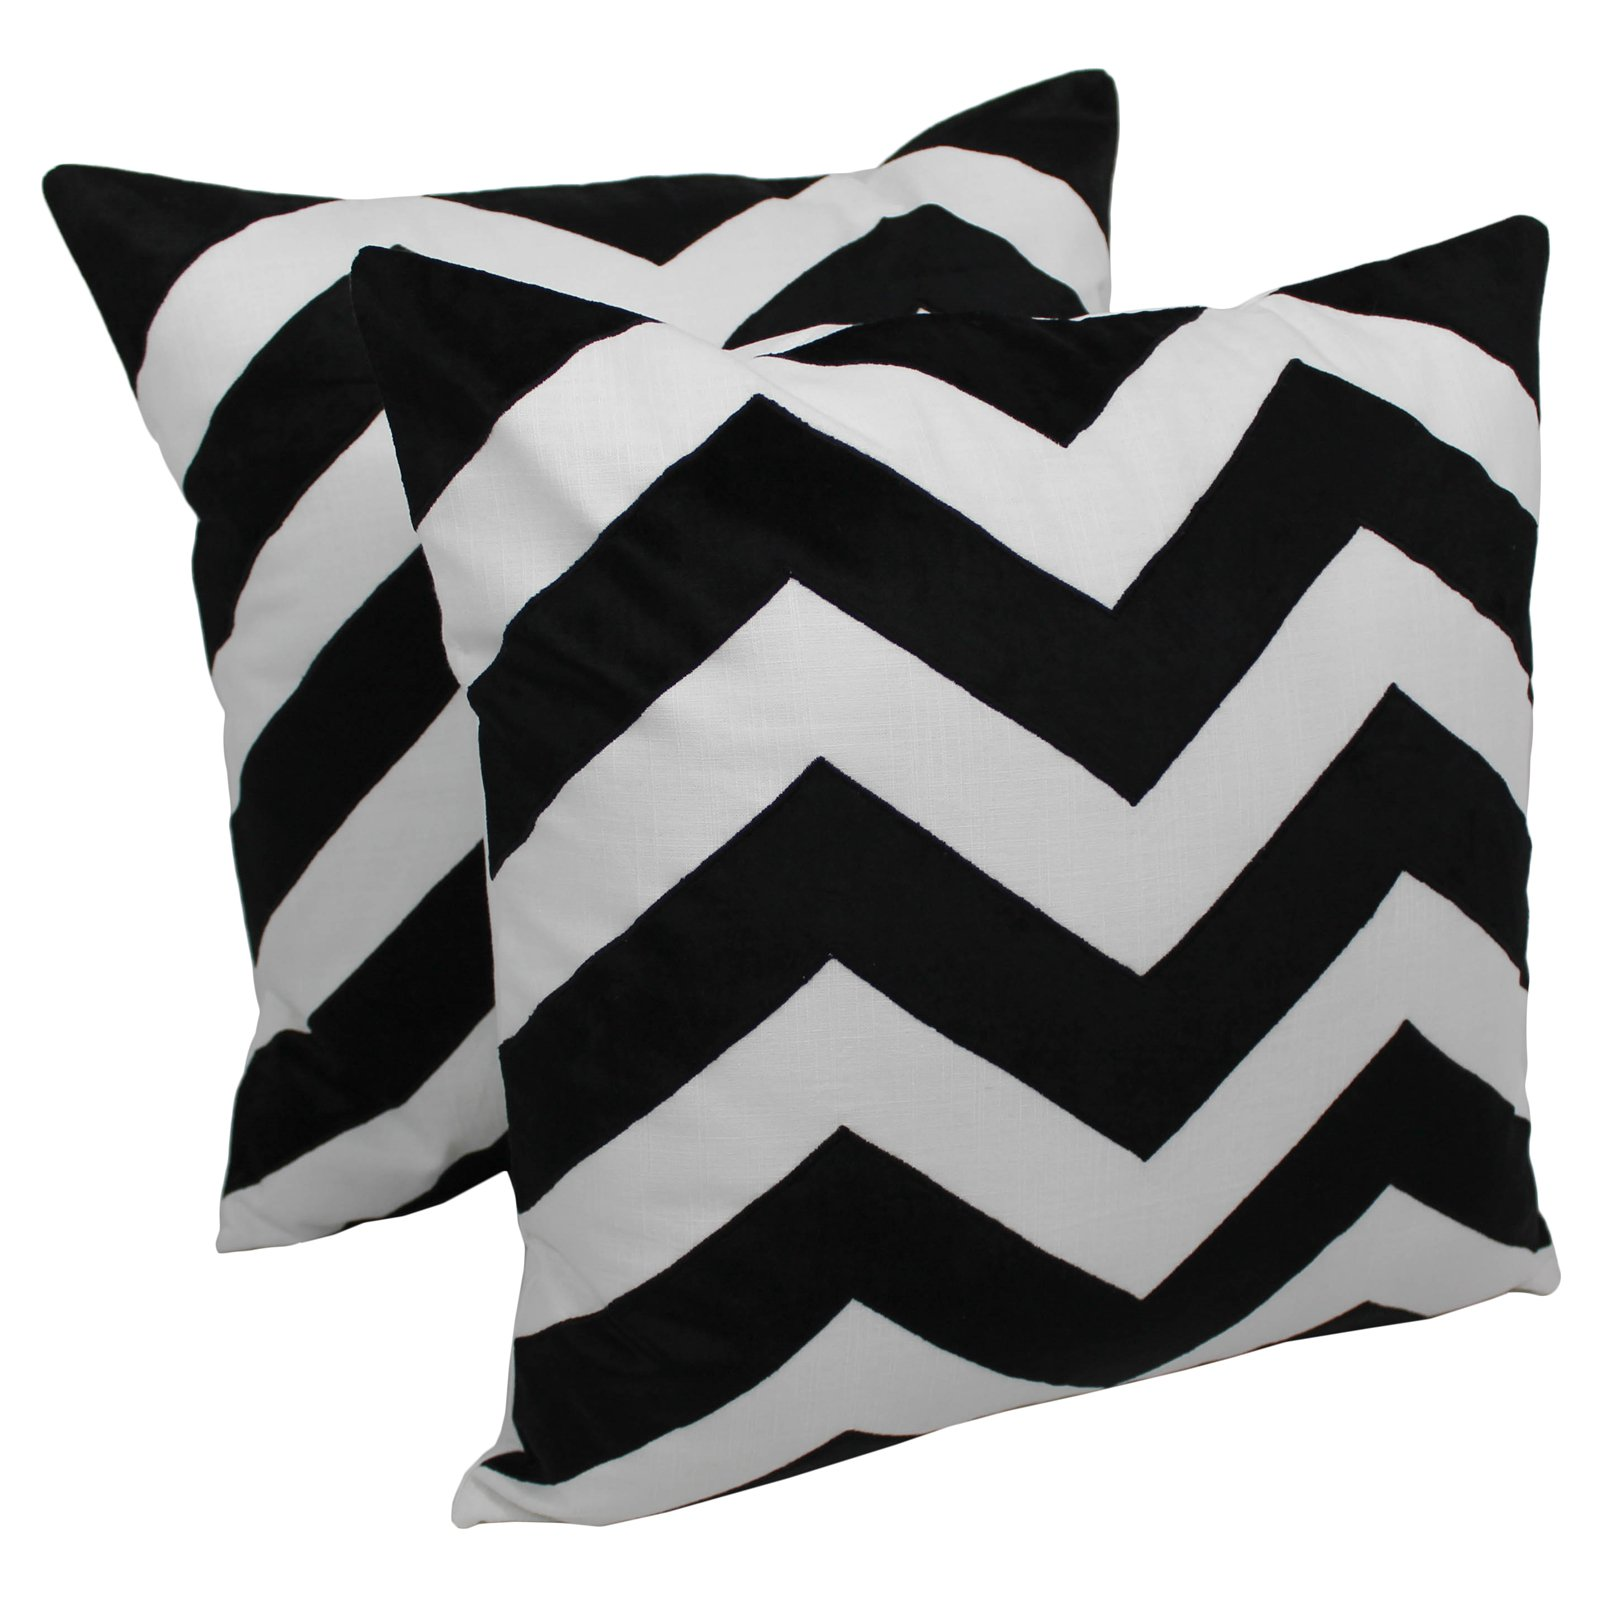 Blazing Needles 20 x 20 in. Indian Chevron Velvet Applique Throw Pillow - Set of 2